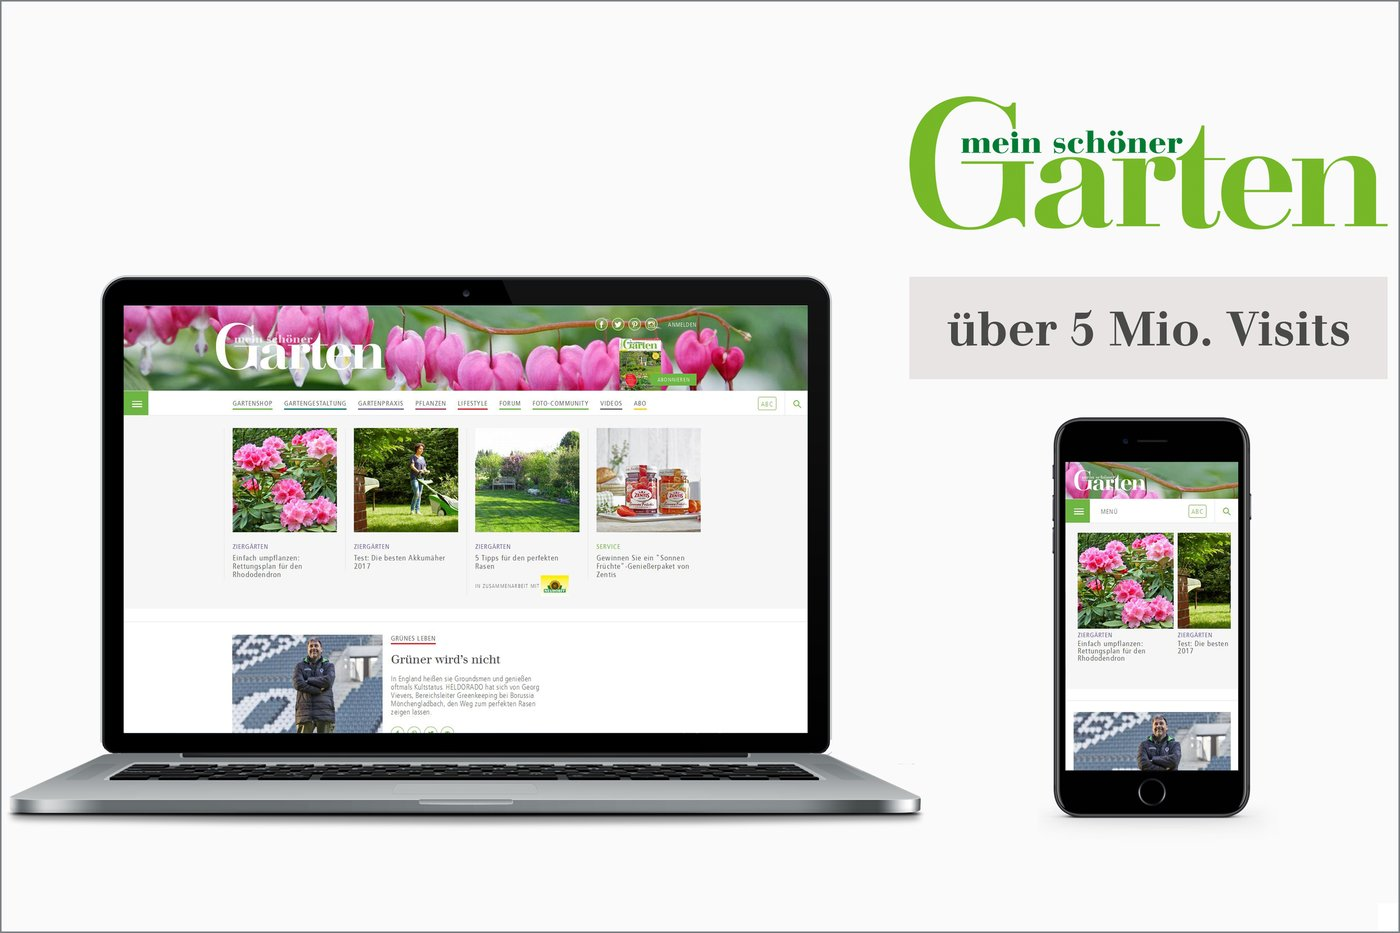 Mein Schöner Garten Forum News: Surge In Digital Growth